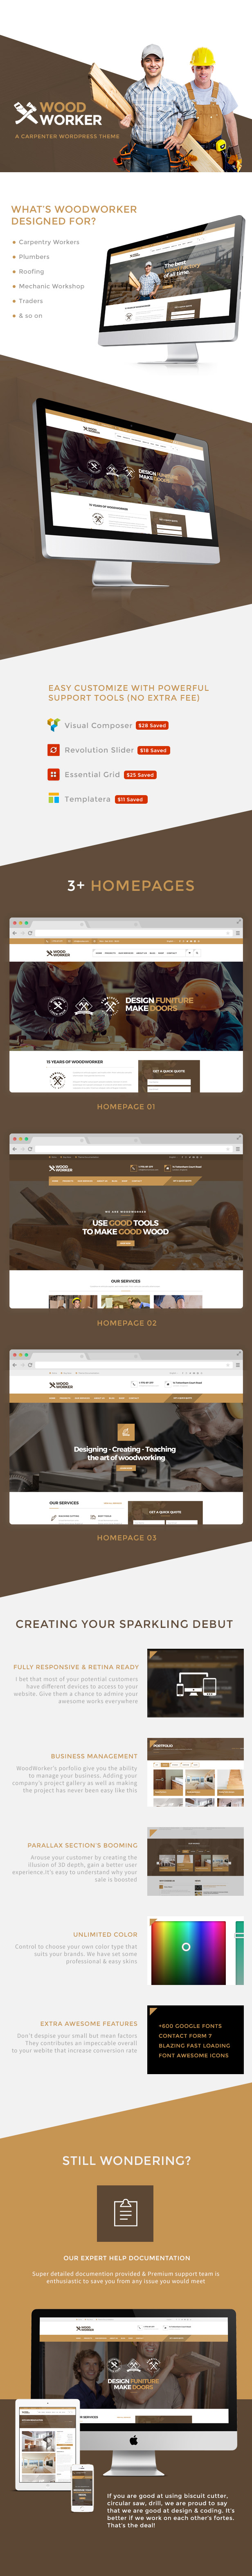 WoodWorker - Carpentry Handy Service WordPress Theme - 5